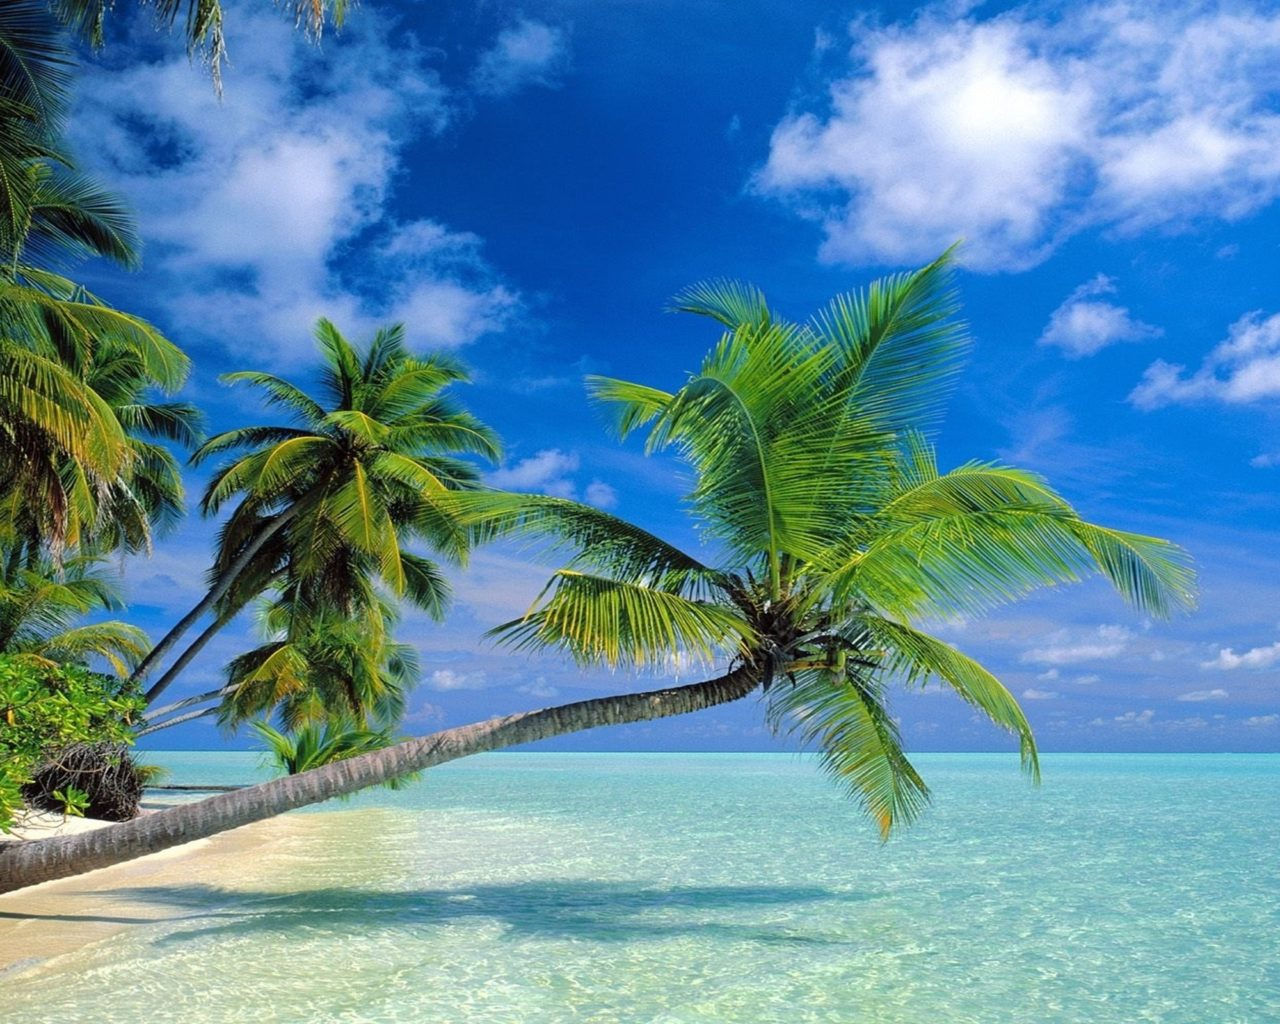 Beautiful Girl Hd Wallpaper For Pc Coconut Trees Beach 2560x1600 Wallpapers13 Com